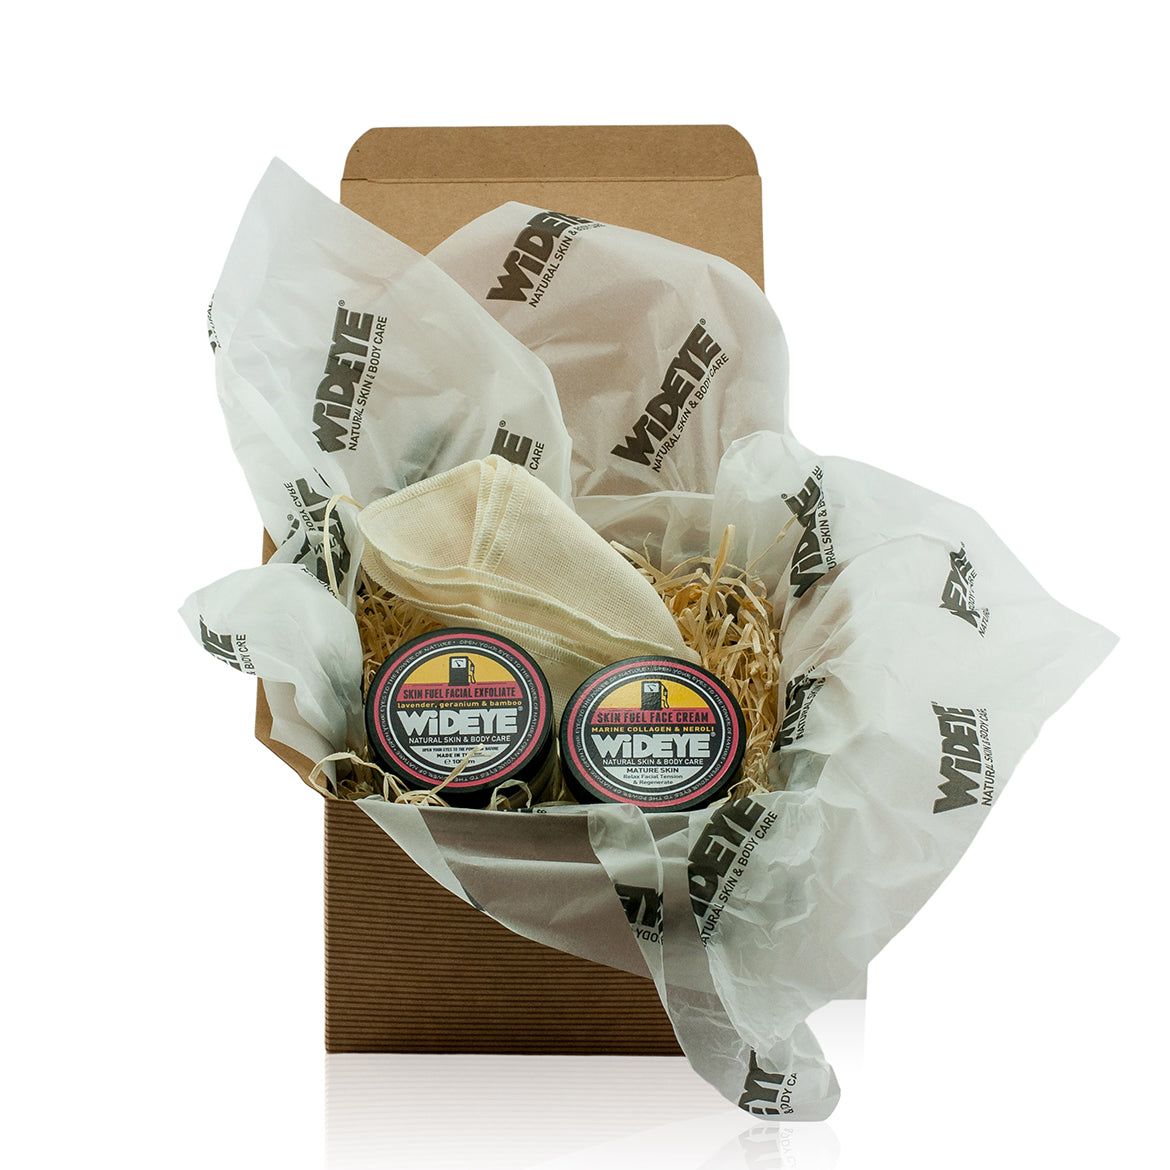 Natural vegetarian skincare Skin Fuel facial kit gift box, including face cream, facial exfoliate and muslin cloth. Handmade by WiDEYE in Rye.